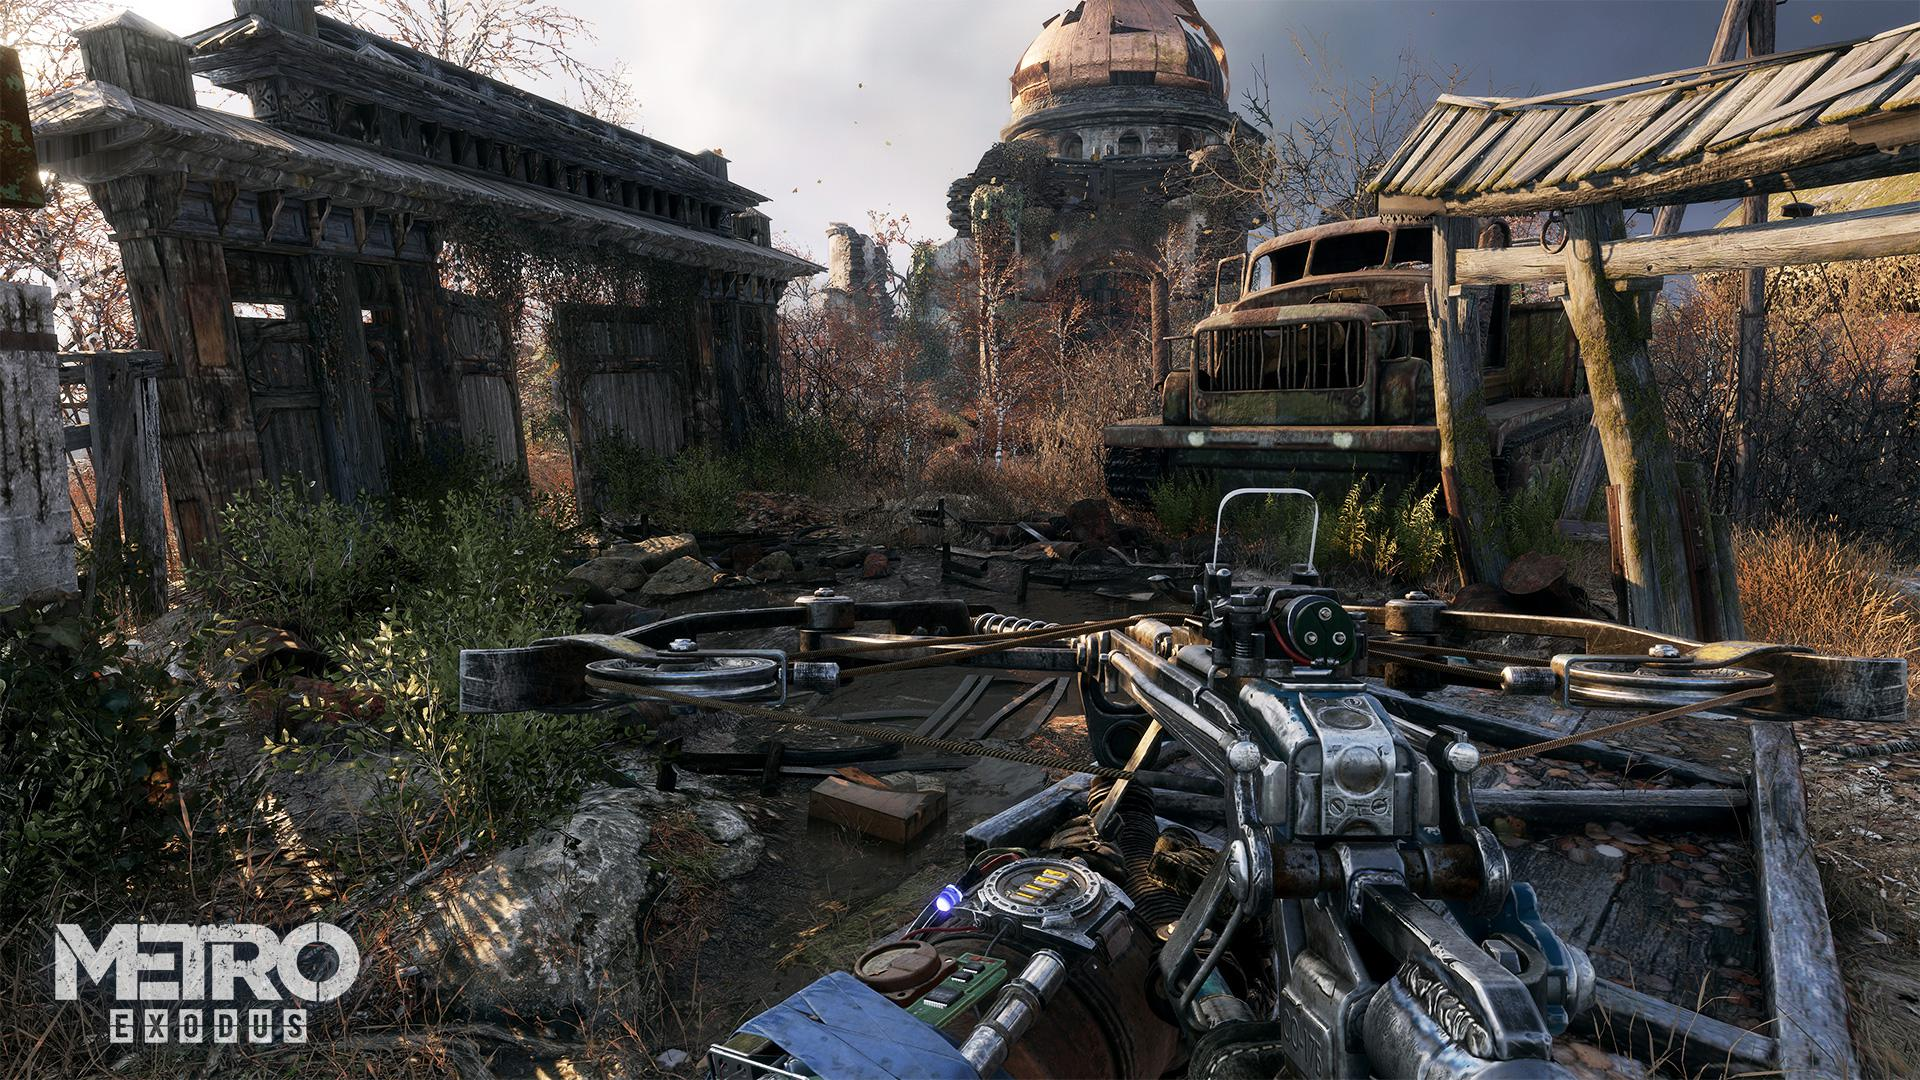 Metro Exodus will be one the year's best-looking games